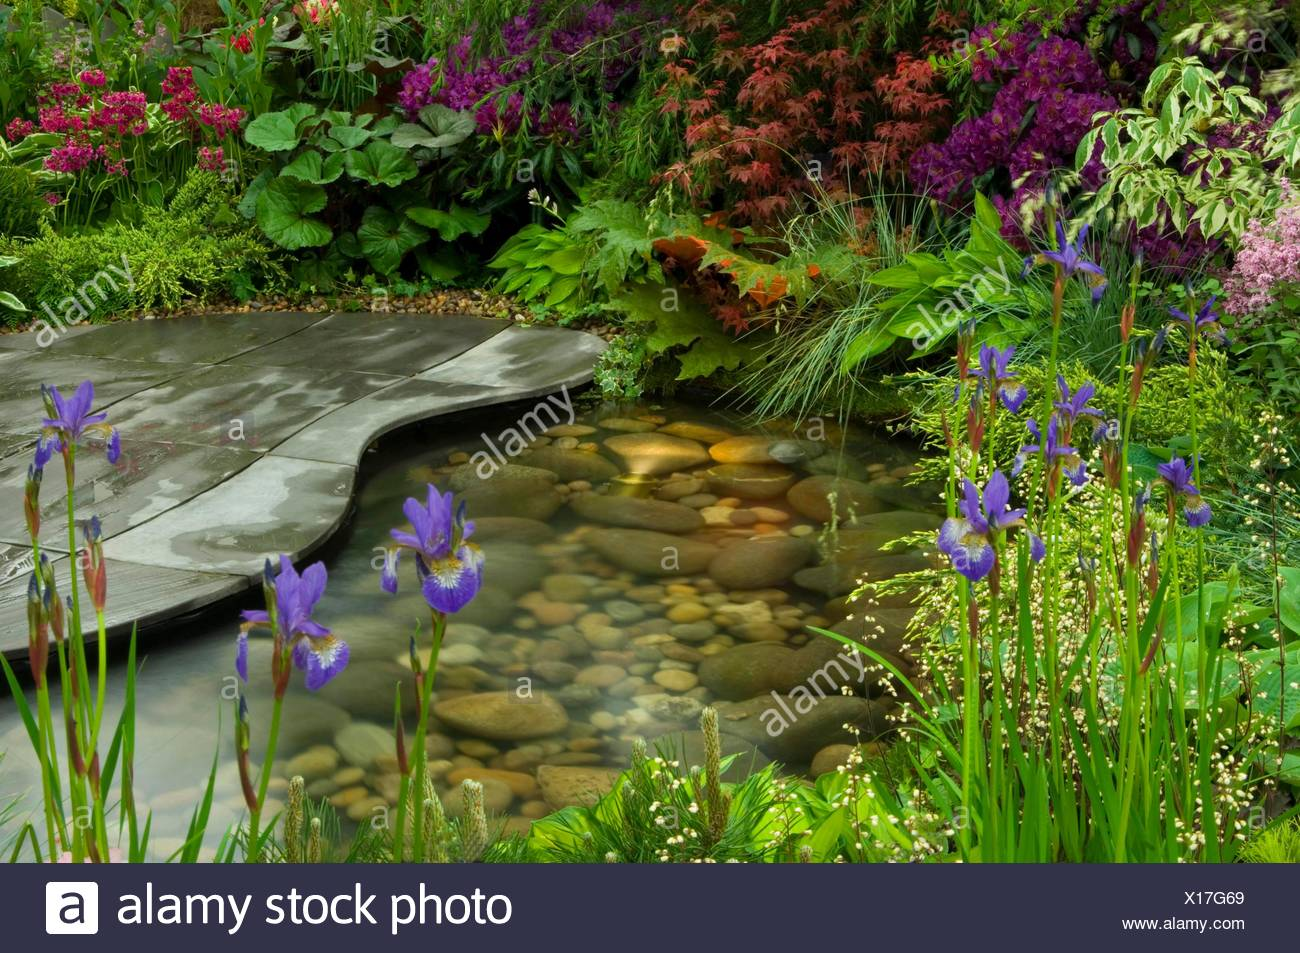 Pool- - (Please credit: Photos Horticultural/Hillier Nurseries)   MIW251128 Stock Photo